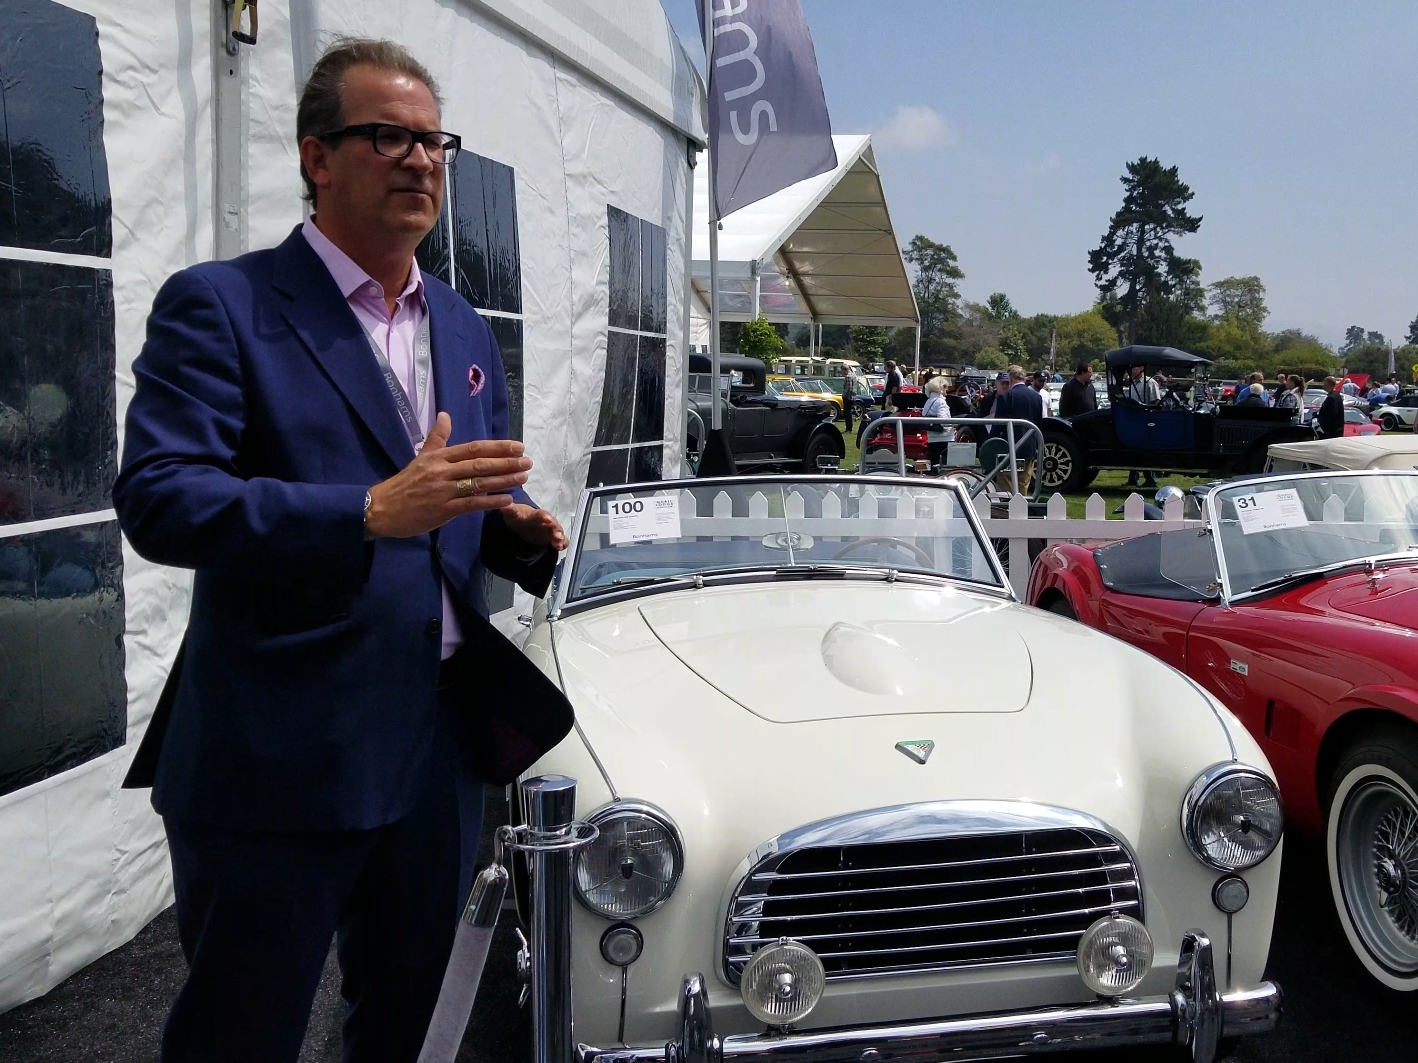 Andy Reid discusses a Swallow Doretti during Monterey Car Week auction tour | Rebecca Nguyen photo